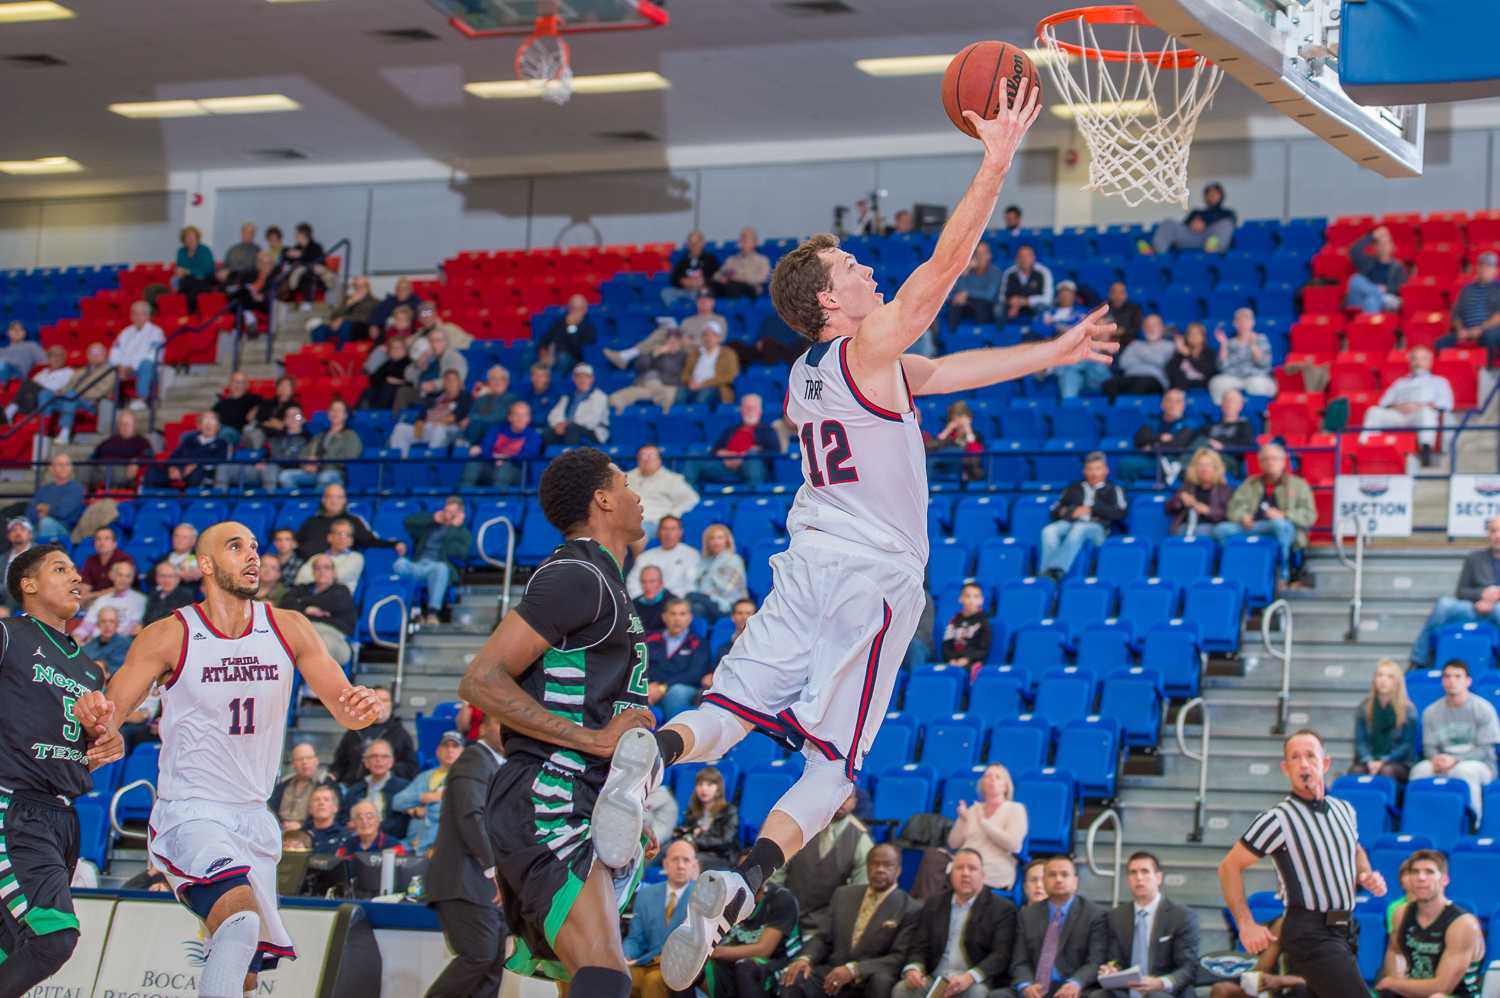 Possessions in men's college basketball will be 30 seconds next season, meaning more chances to score for Jackson Trapp (12) and the FAU basketball program. Photo by Max Jackson